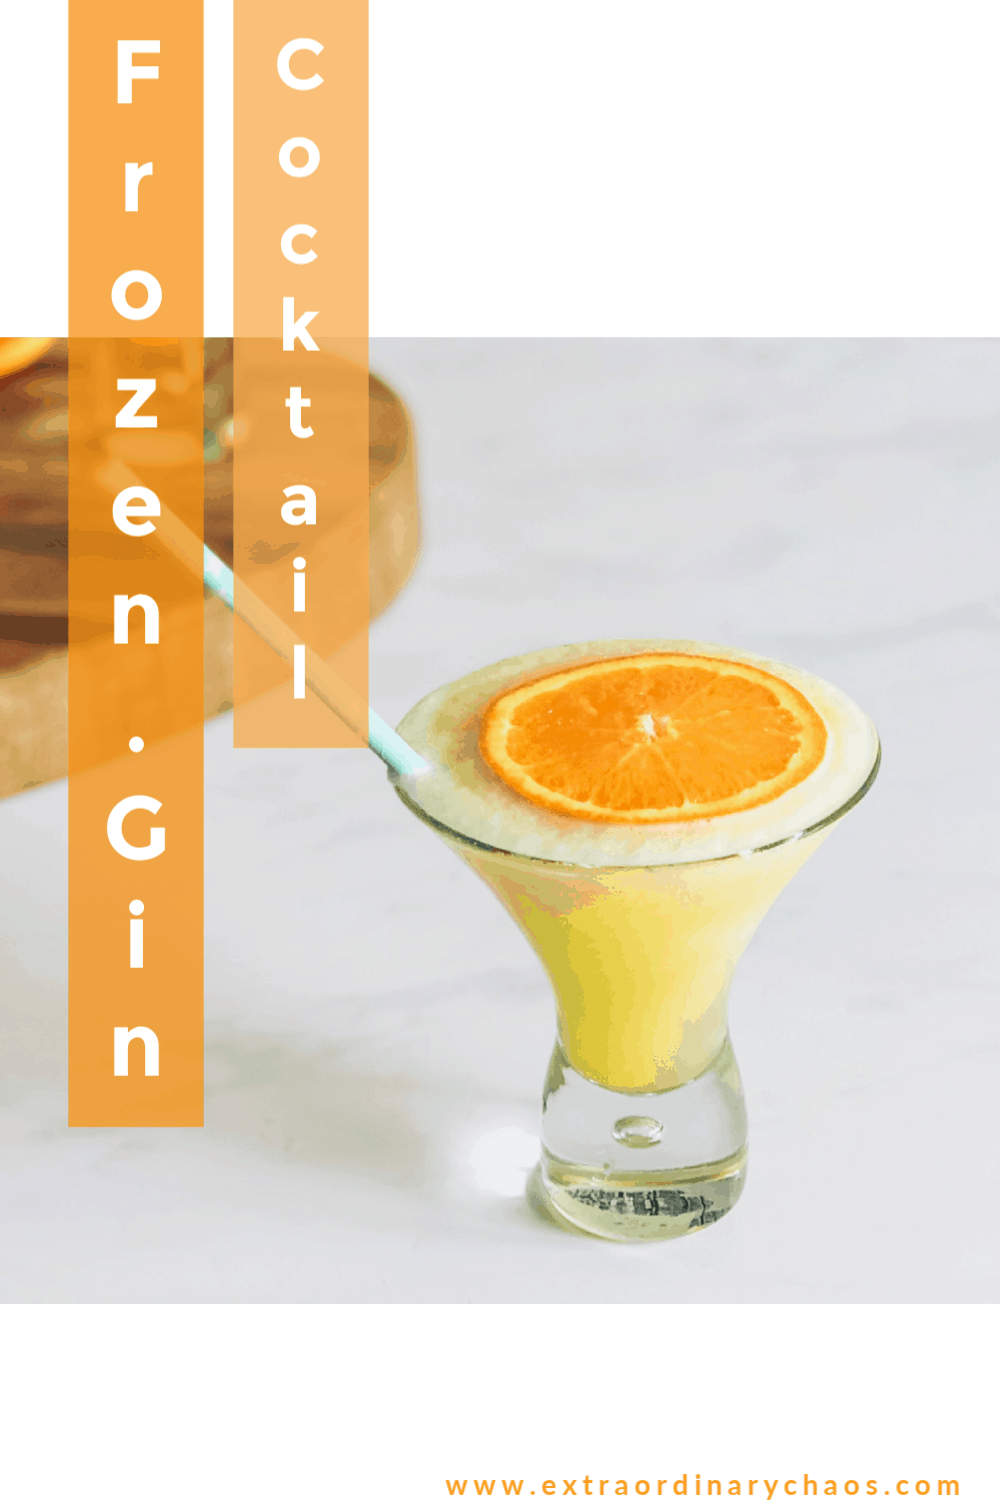 Frozen gin and orange cocktail recipe